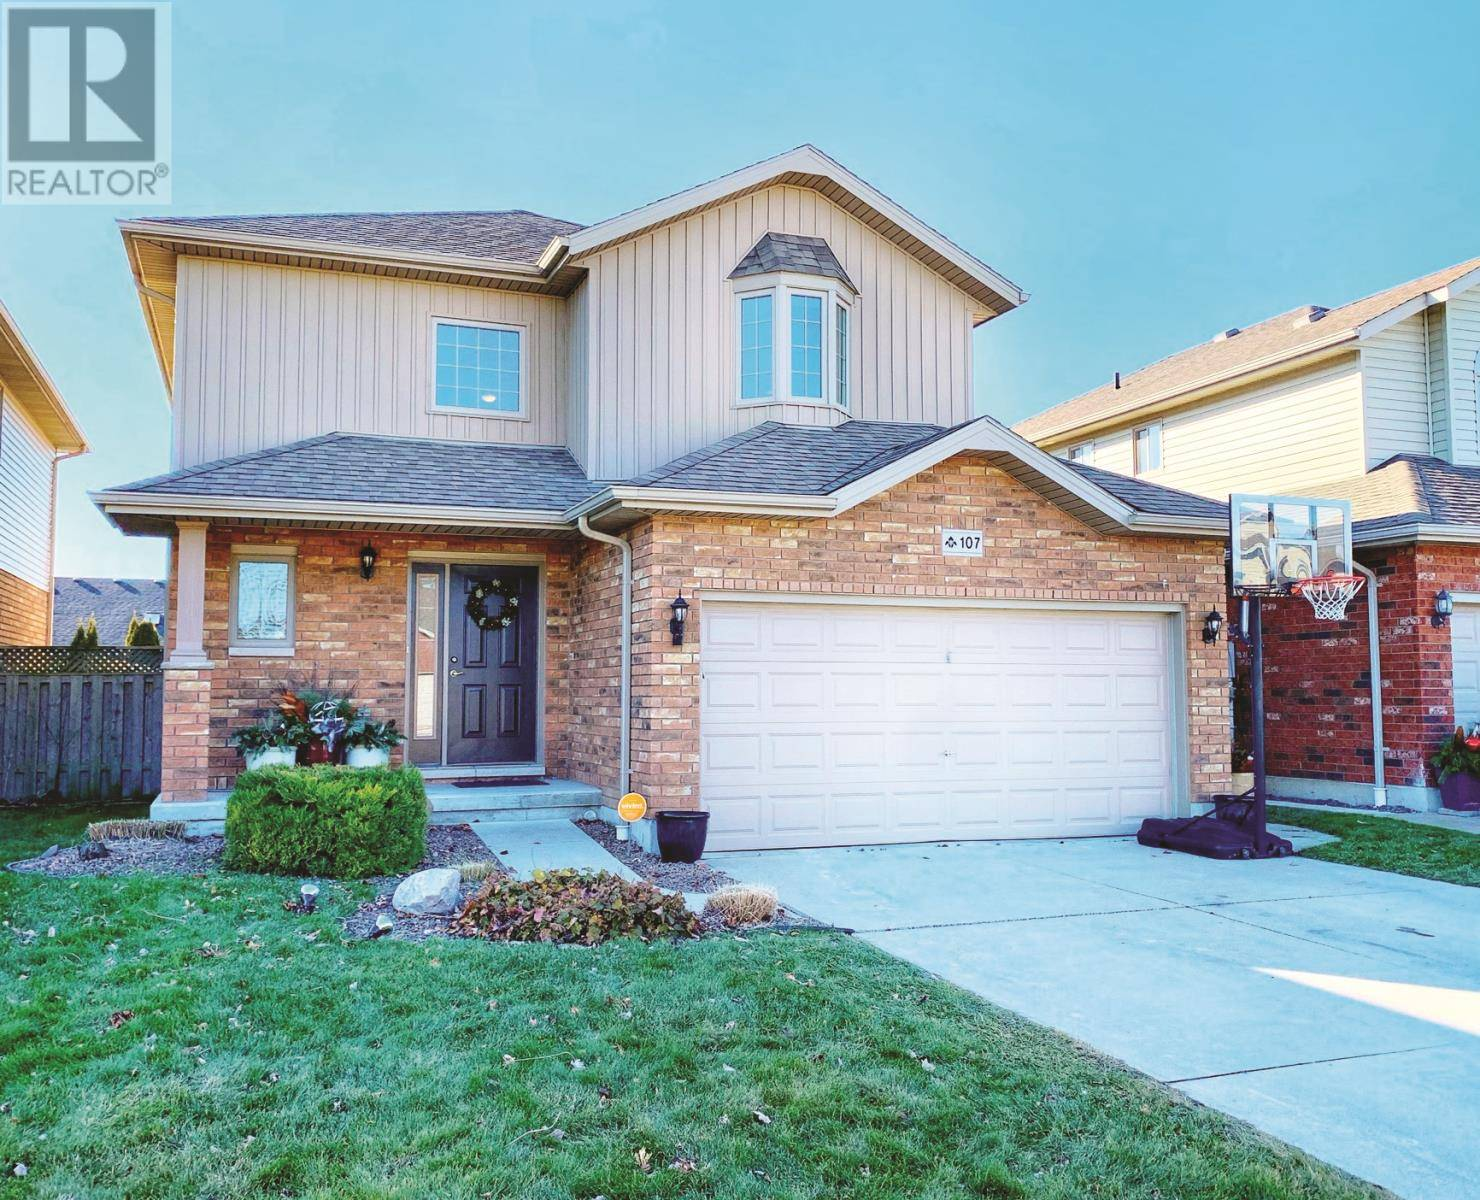 House for sale at 107 Smithfield Circ Chatham Ontario - MLS: 20000134